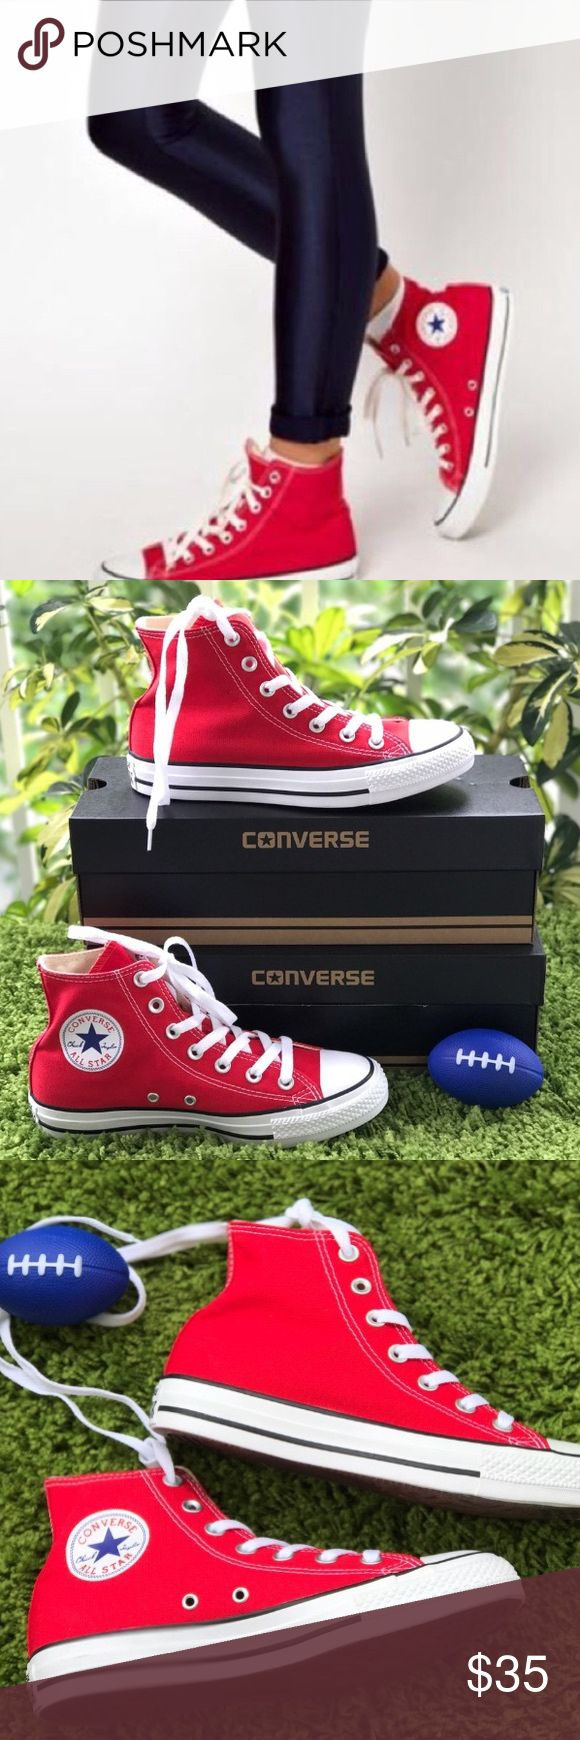 1 HOUR SALE! CONVERSE RED WOMENS HI TOP SHOES Brand new without box. 100% authentic. Ships same day or very next. Converse Shoes Sneakers